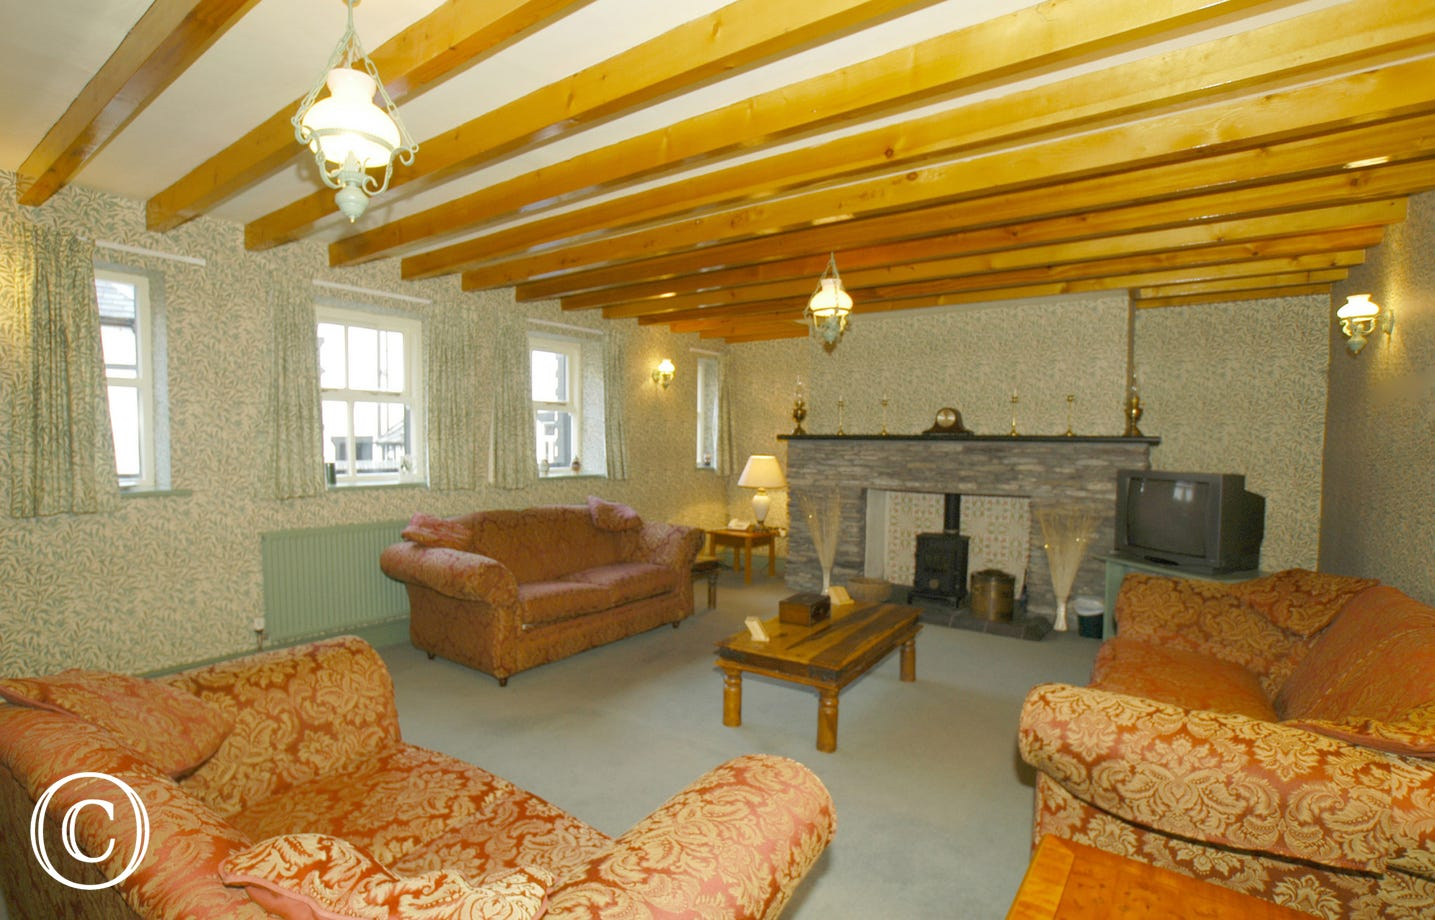 5 Star Holiday Cottage in North Wales with large comfortable lounge